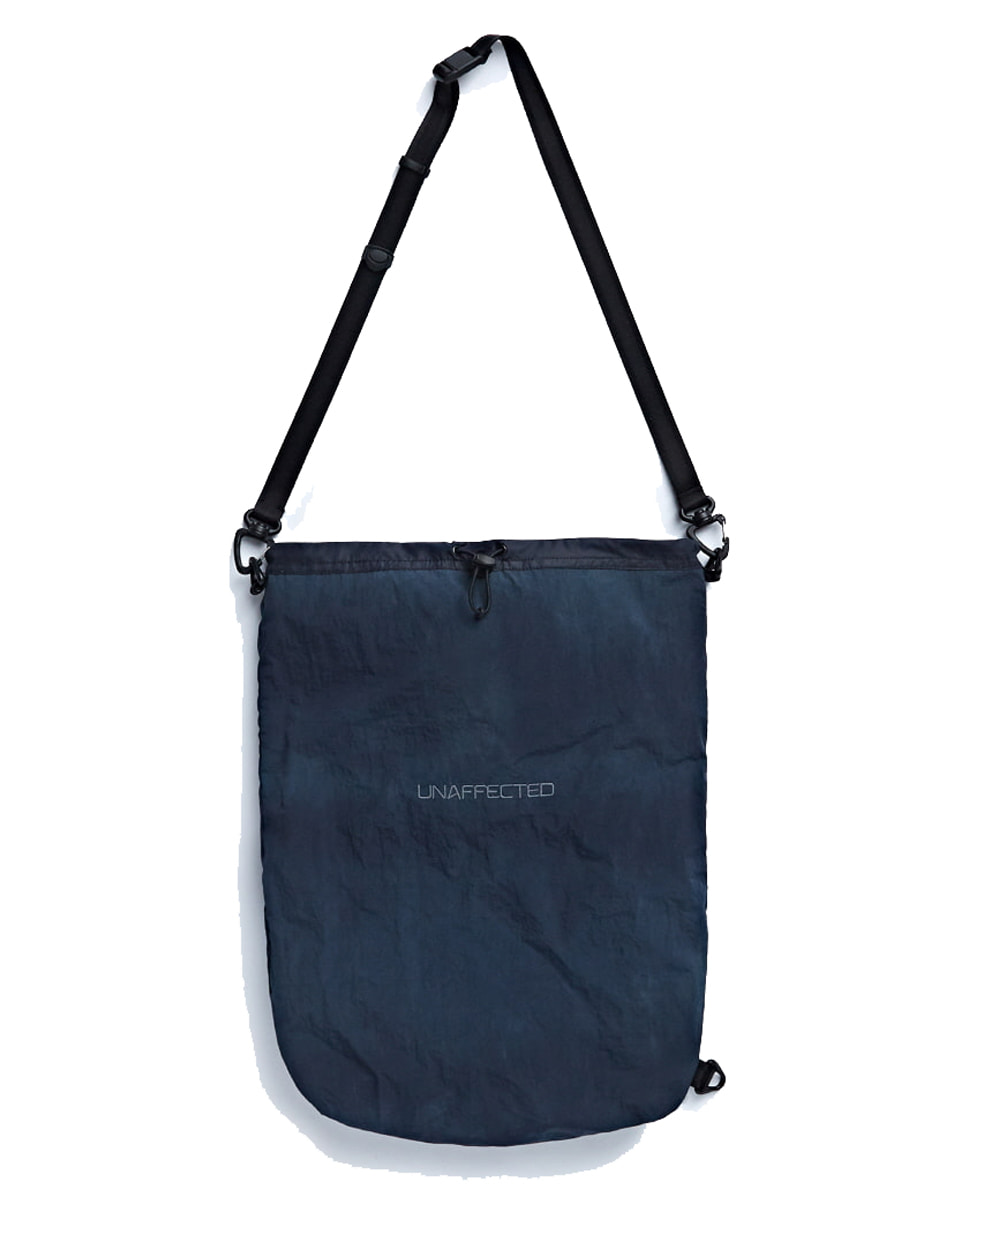 언어펙티드 LOGO SLING BAG  (Ocean Blue)